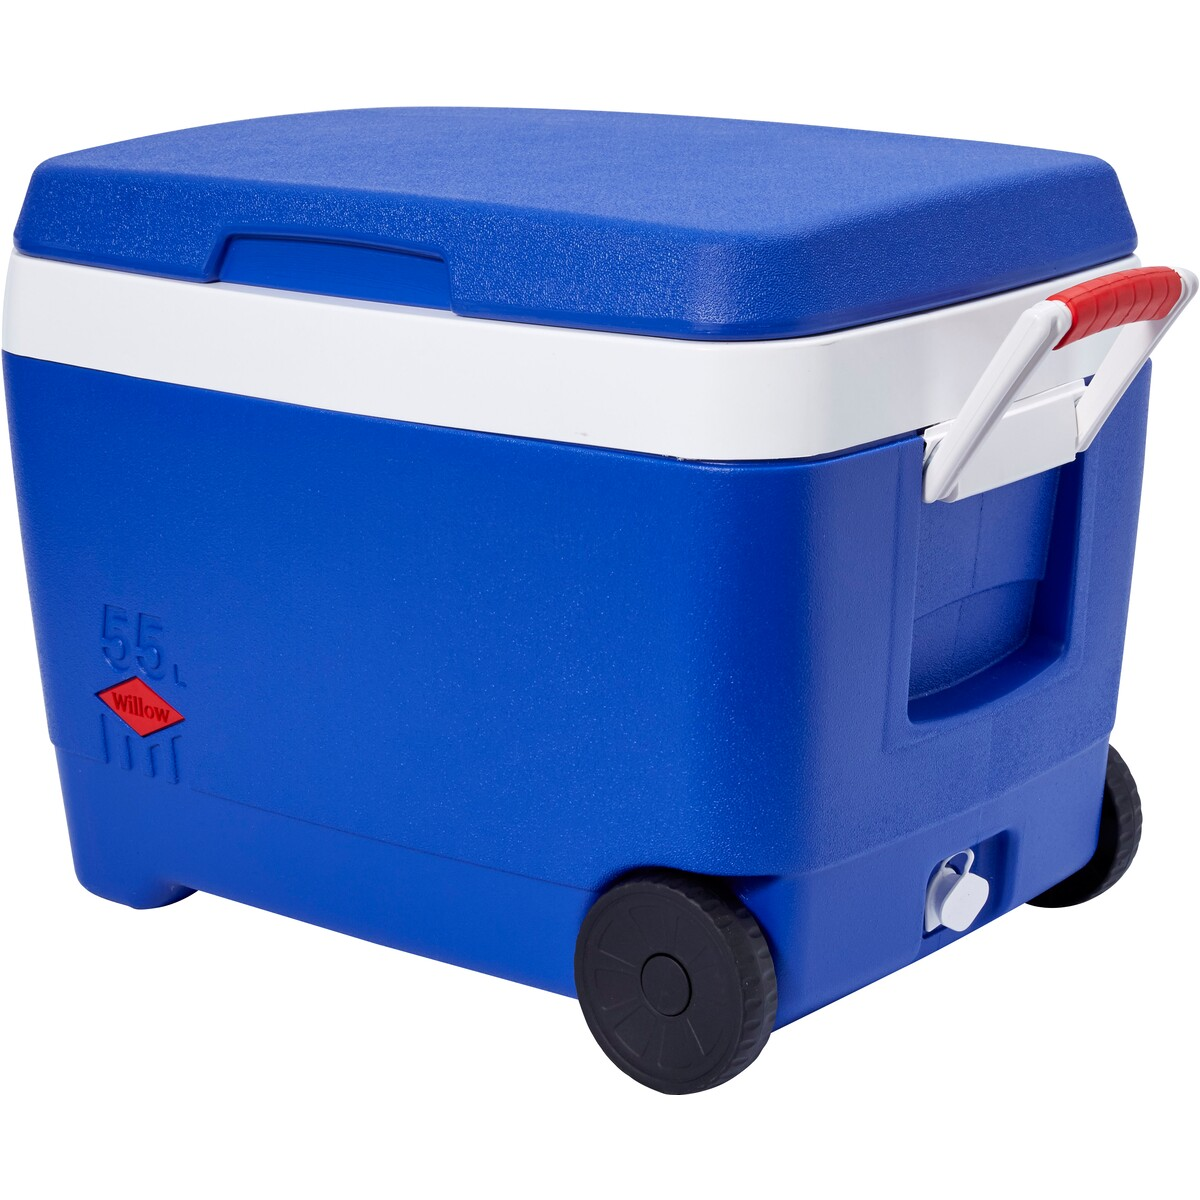 Willow 55L Cooler